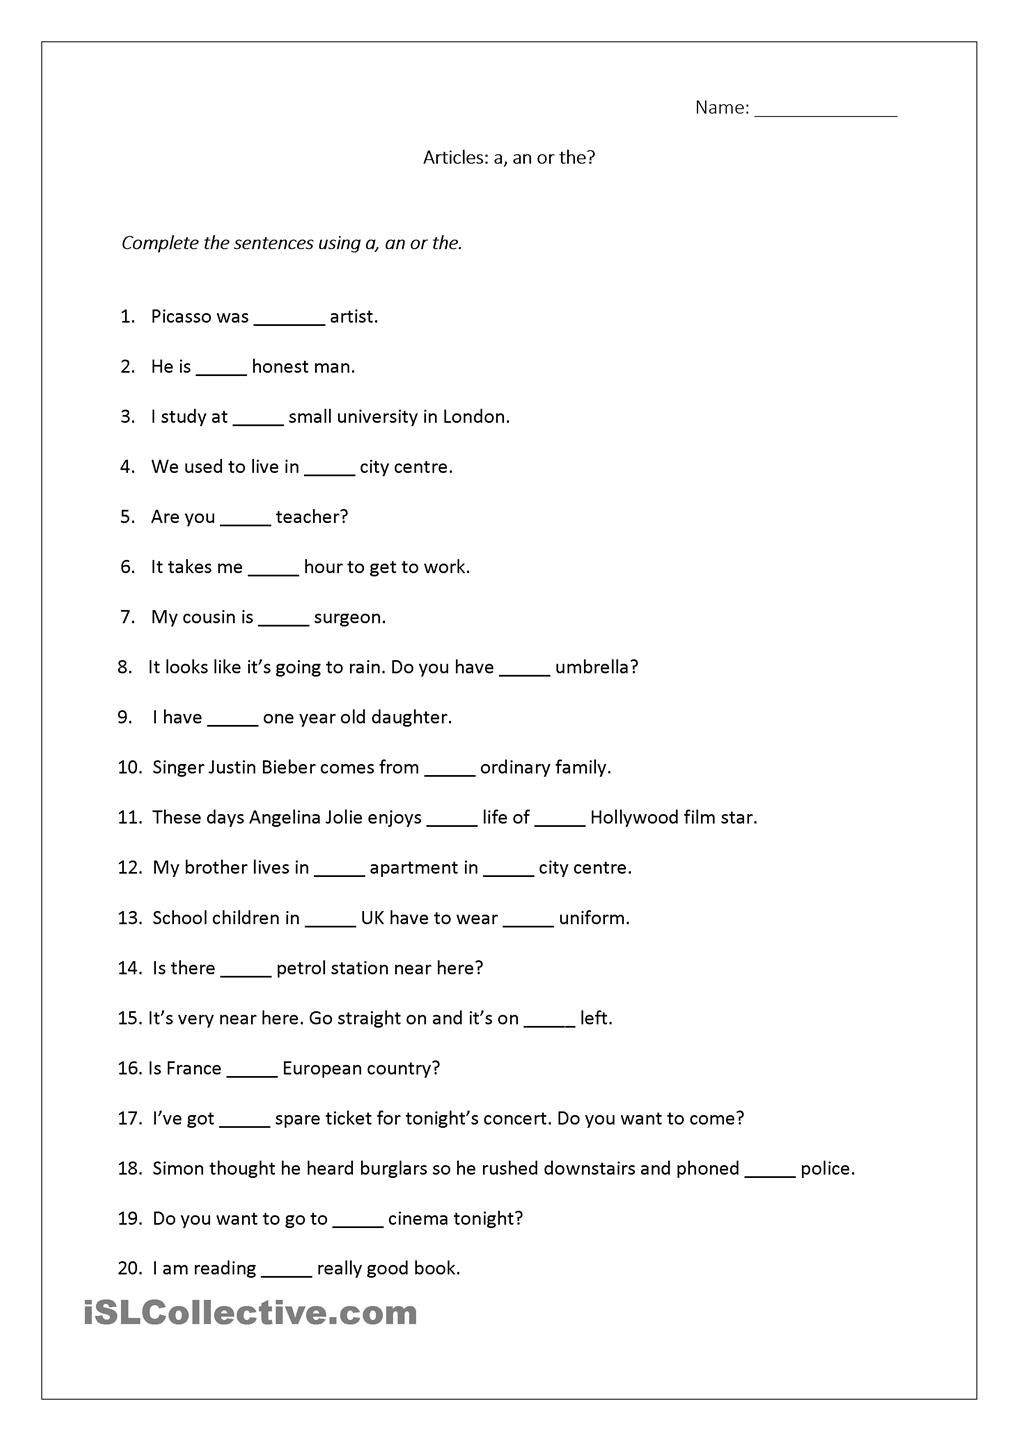 hight resolution of Articles worksheet (a